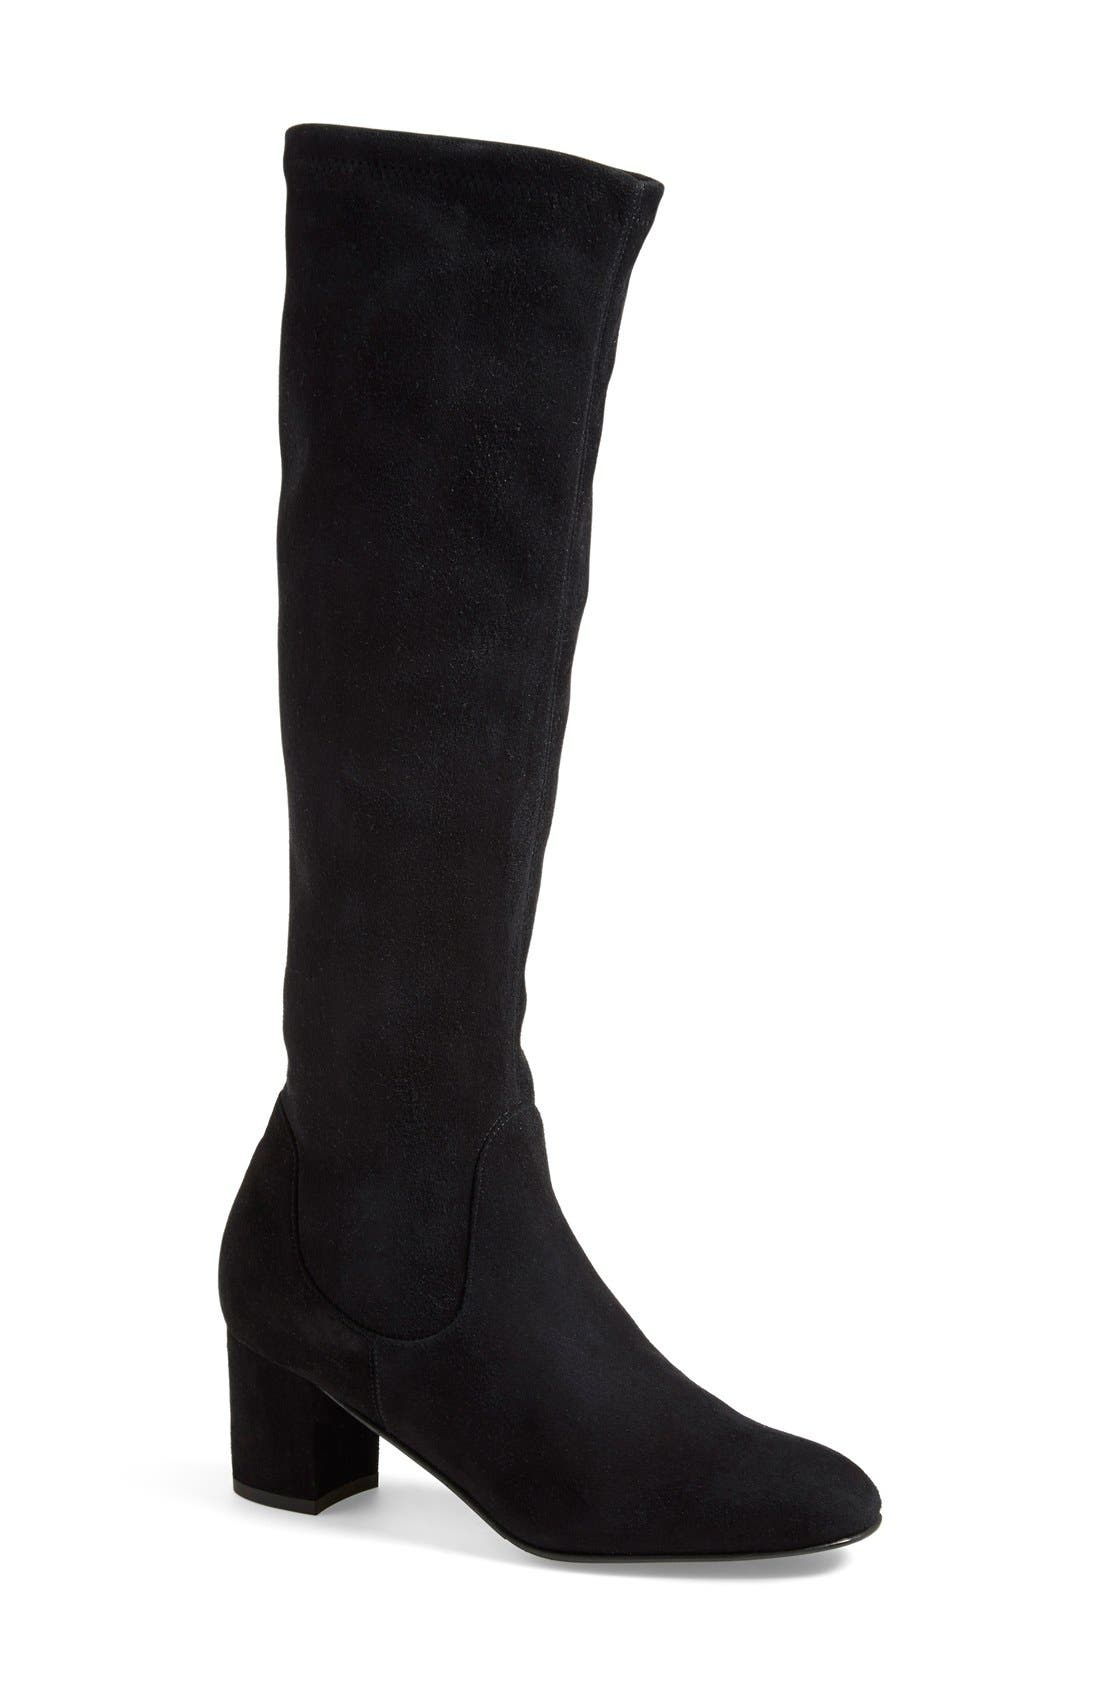 L.K. BENNETT Keri Knee-High Boot